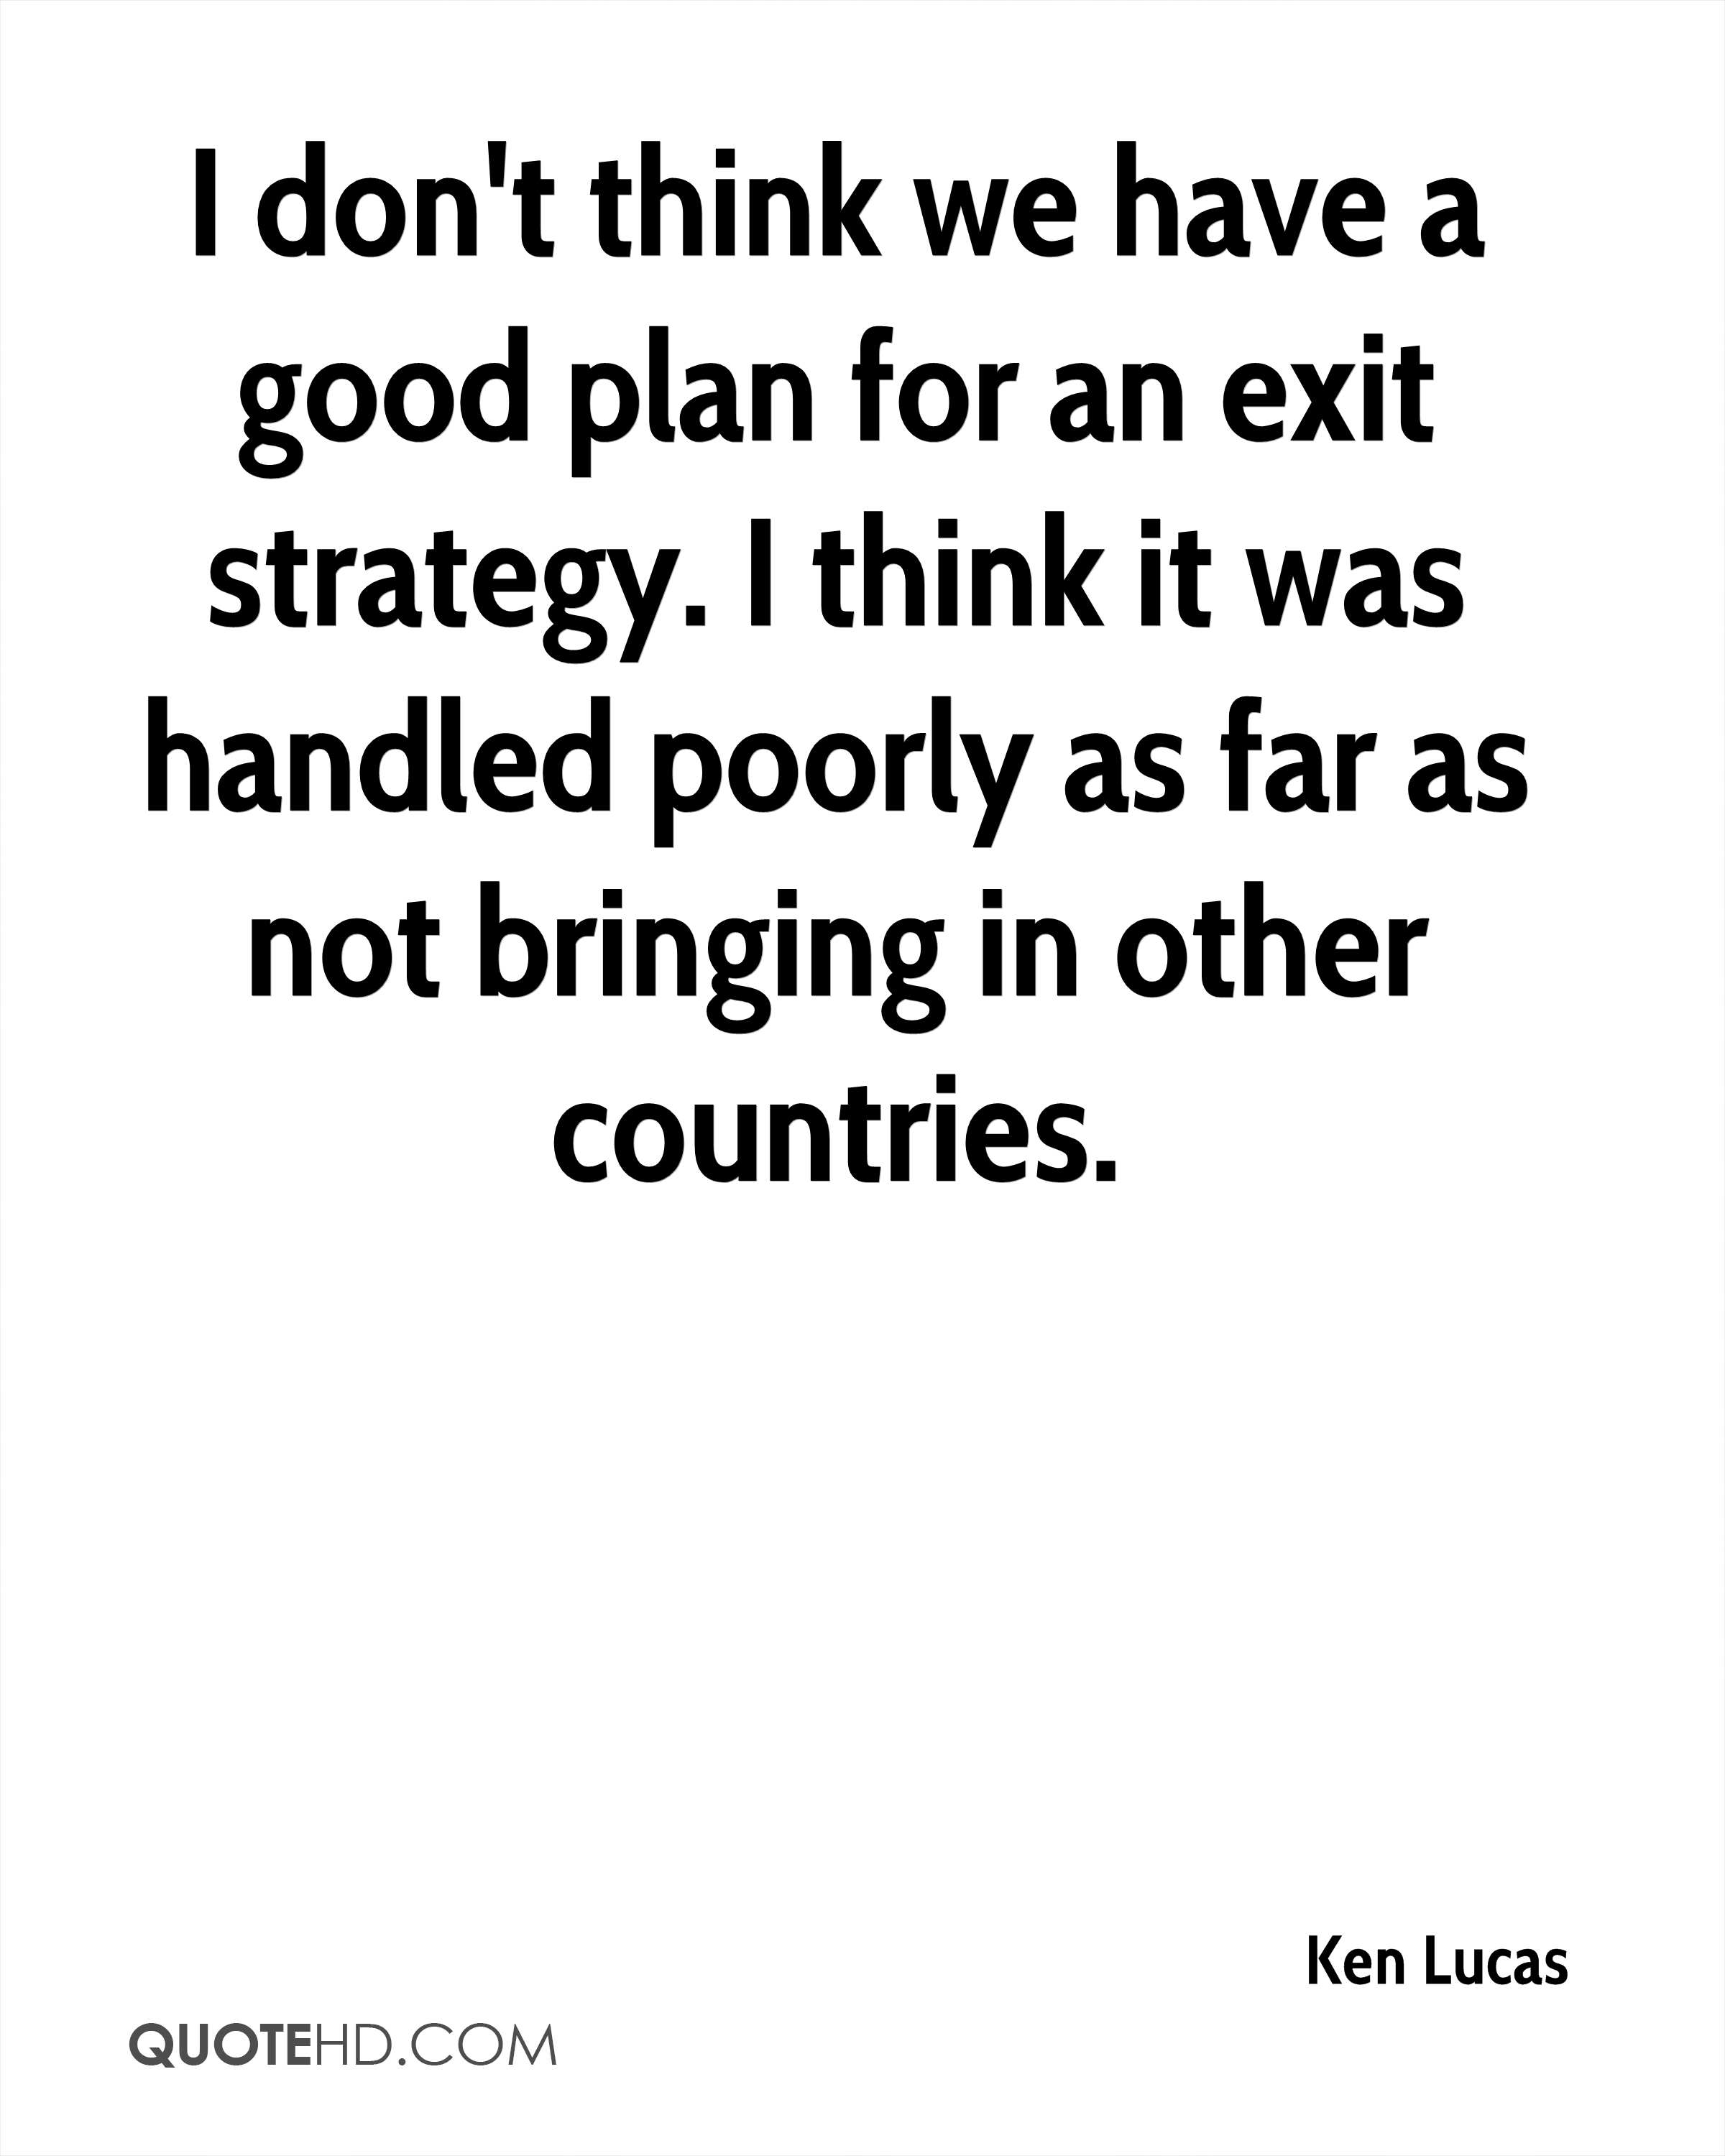 I don't think we have a good plan for an exit strategy. I think it was handled poorly as far as not bringing in other countries.